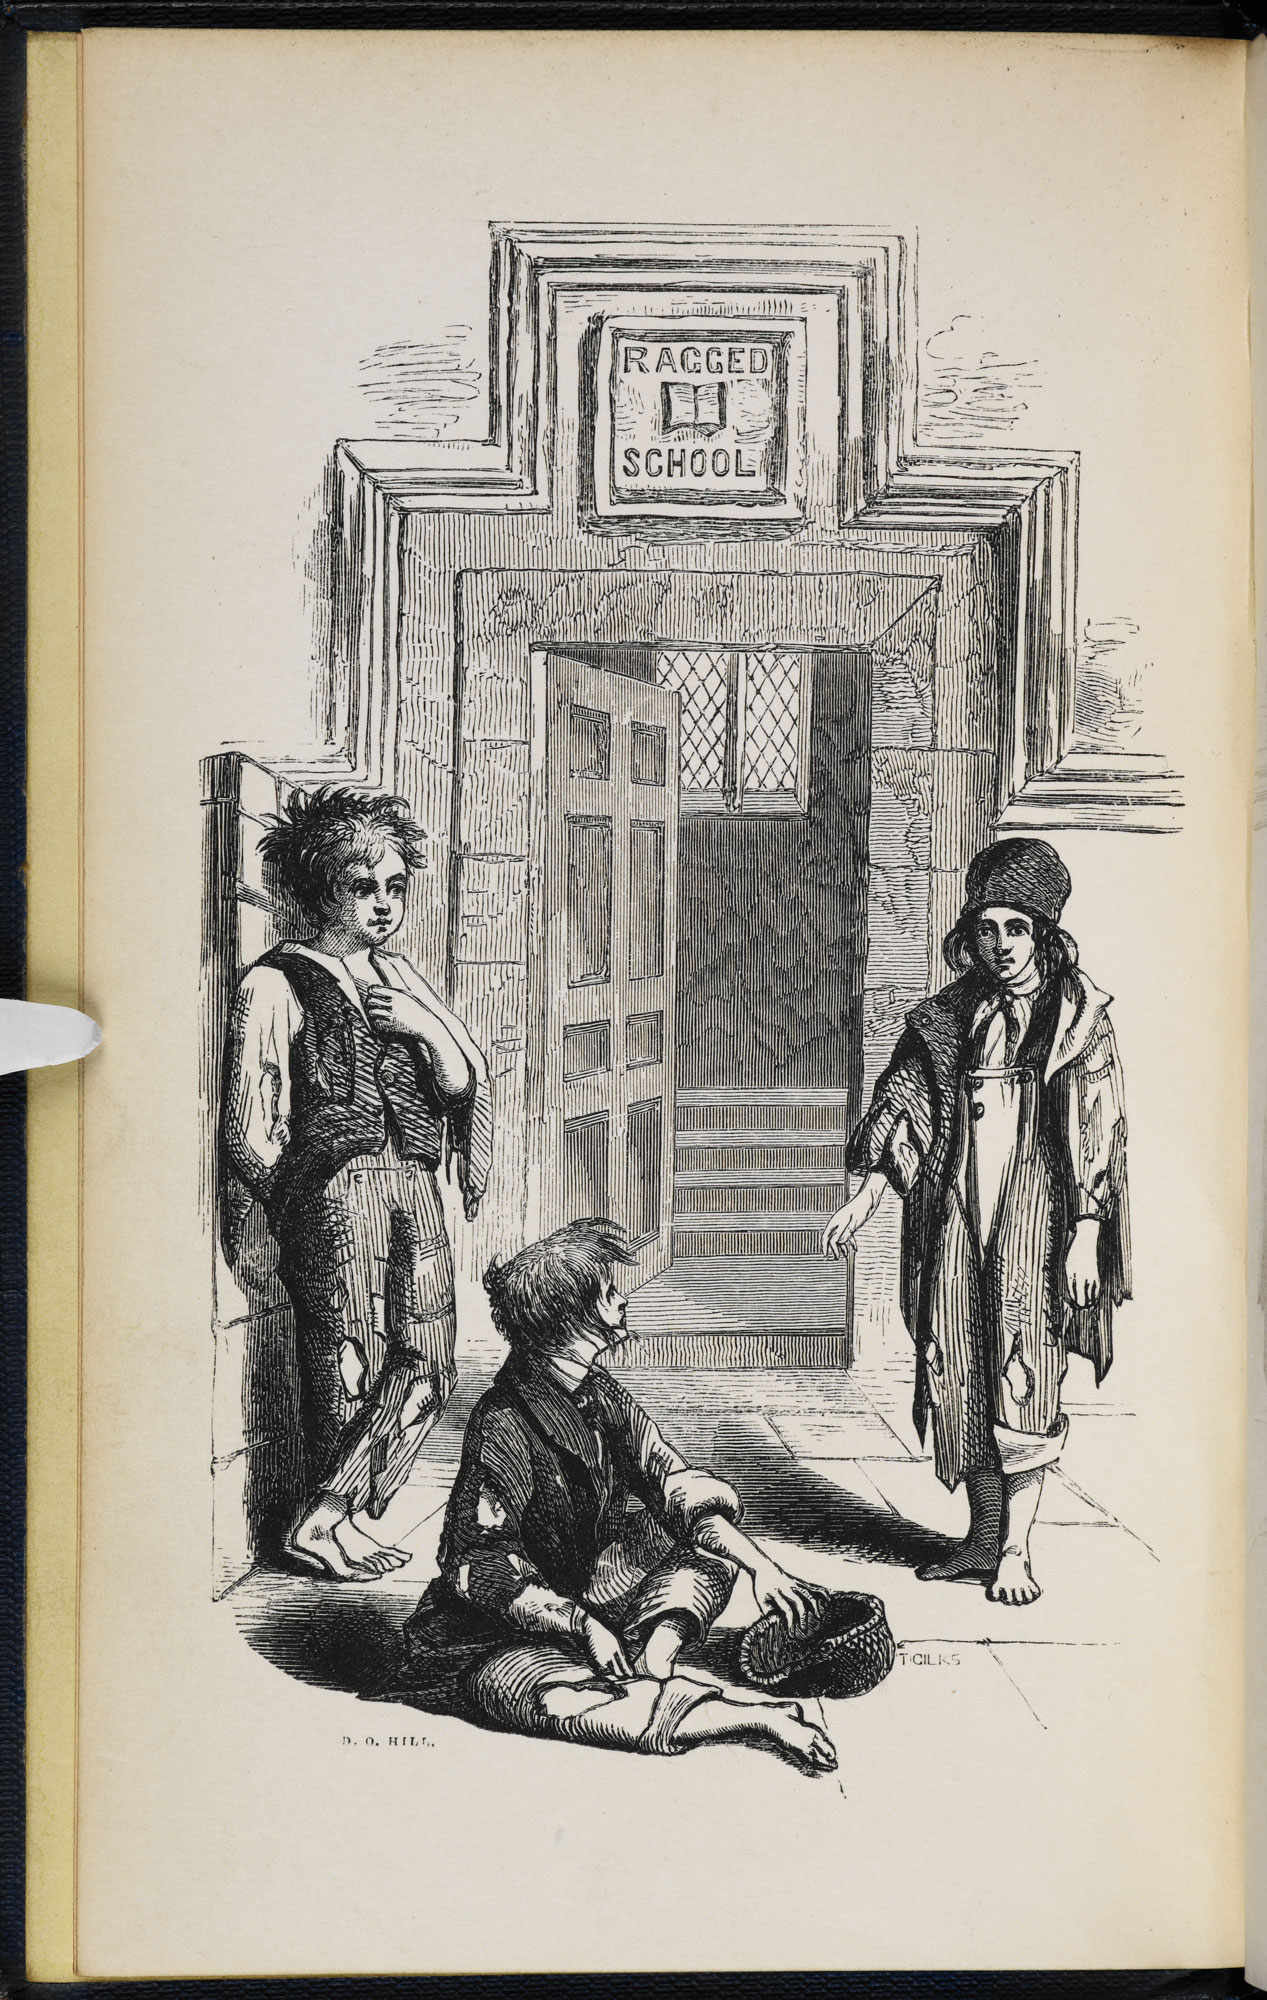 Ragged School Rhymes  [page: frontispiece]